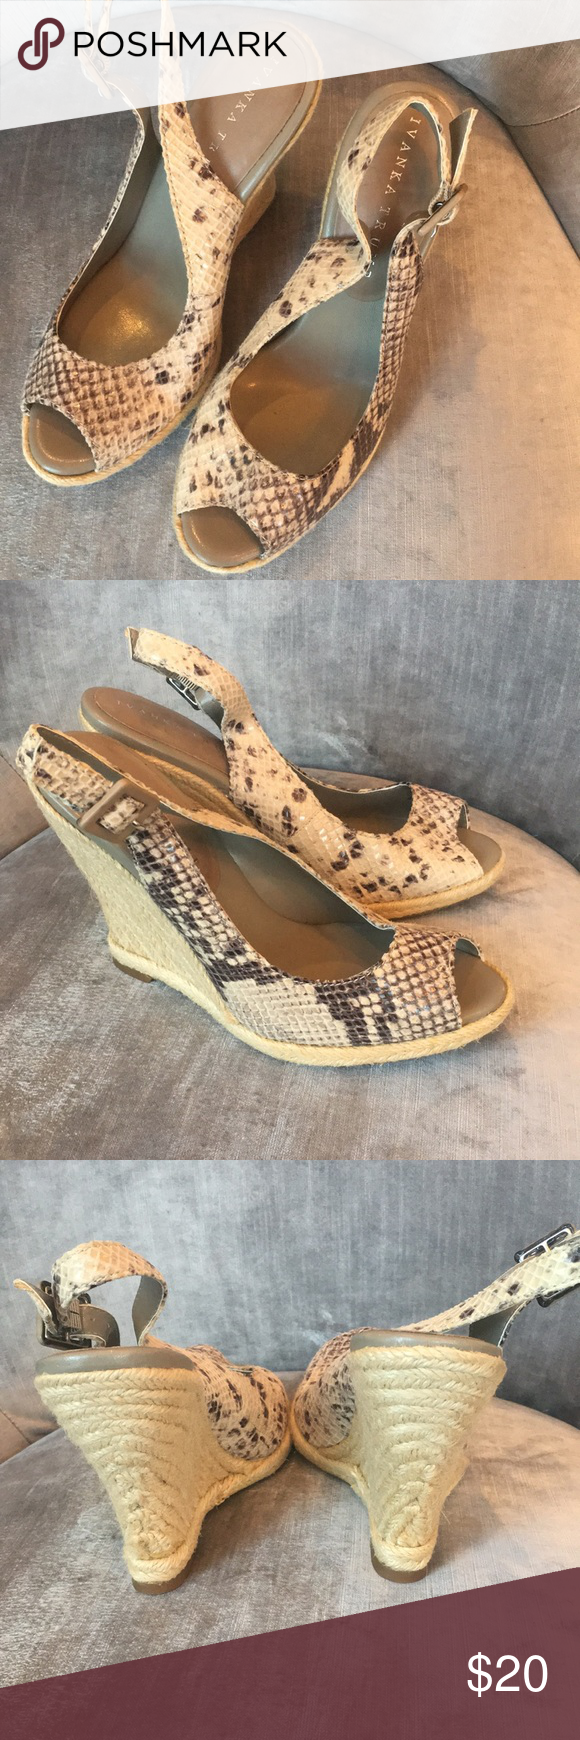 d288a13af IVANKA TRUMP Peep Toe Wedge Faux Snakeskin IVANKA TRUMP Women's Size 7MPeep  Toe Wedge Pumps Faux Snake Skin Ivanka Trump Shoes Wedges